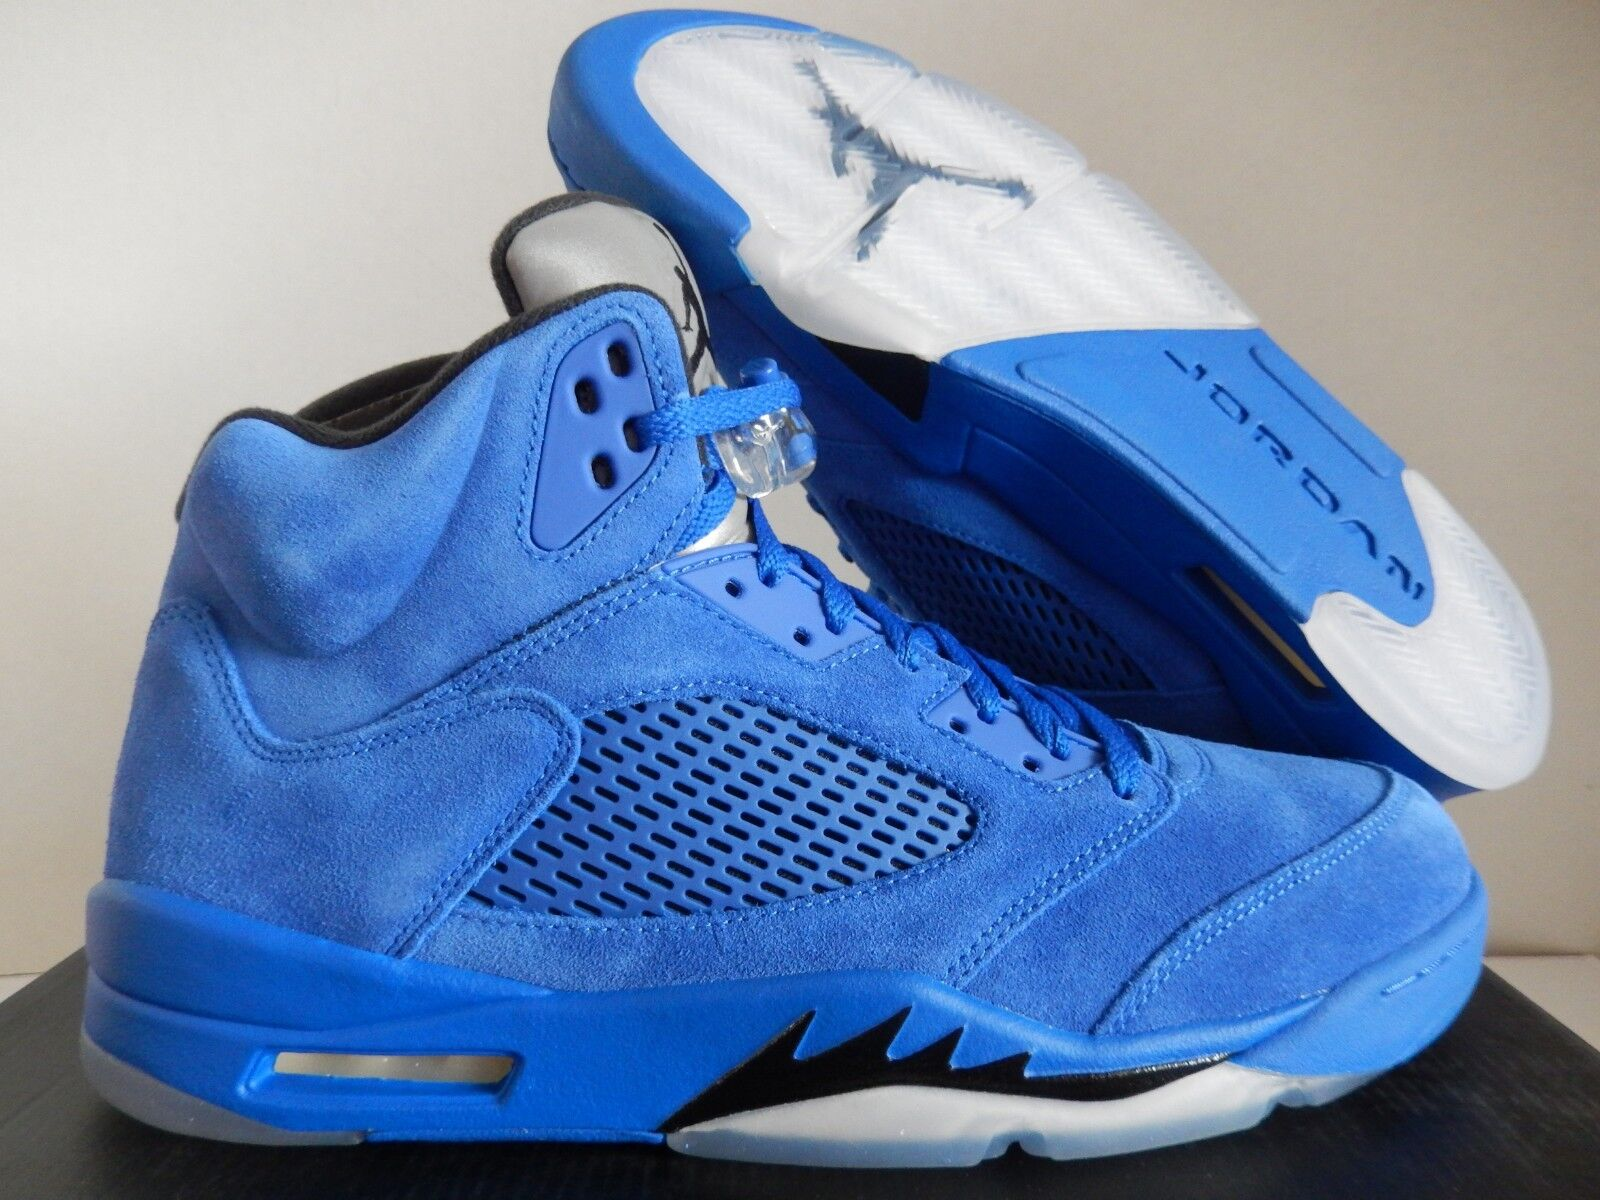 NIKE AIR JORDAN 5 RETRO GAME ROYAL Bleu